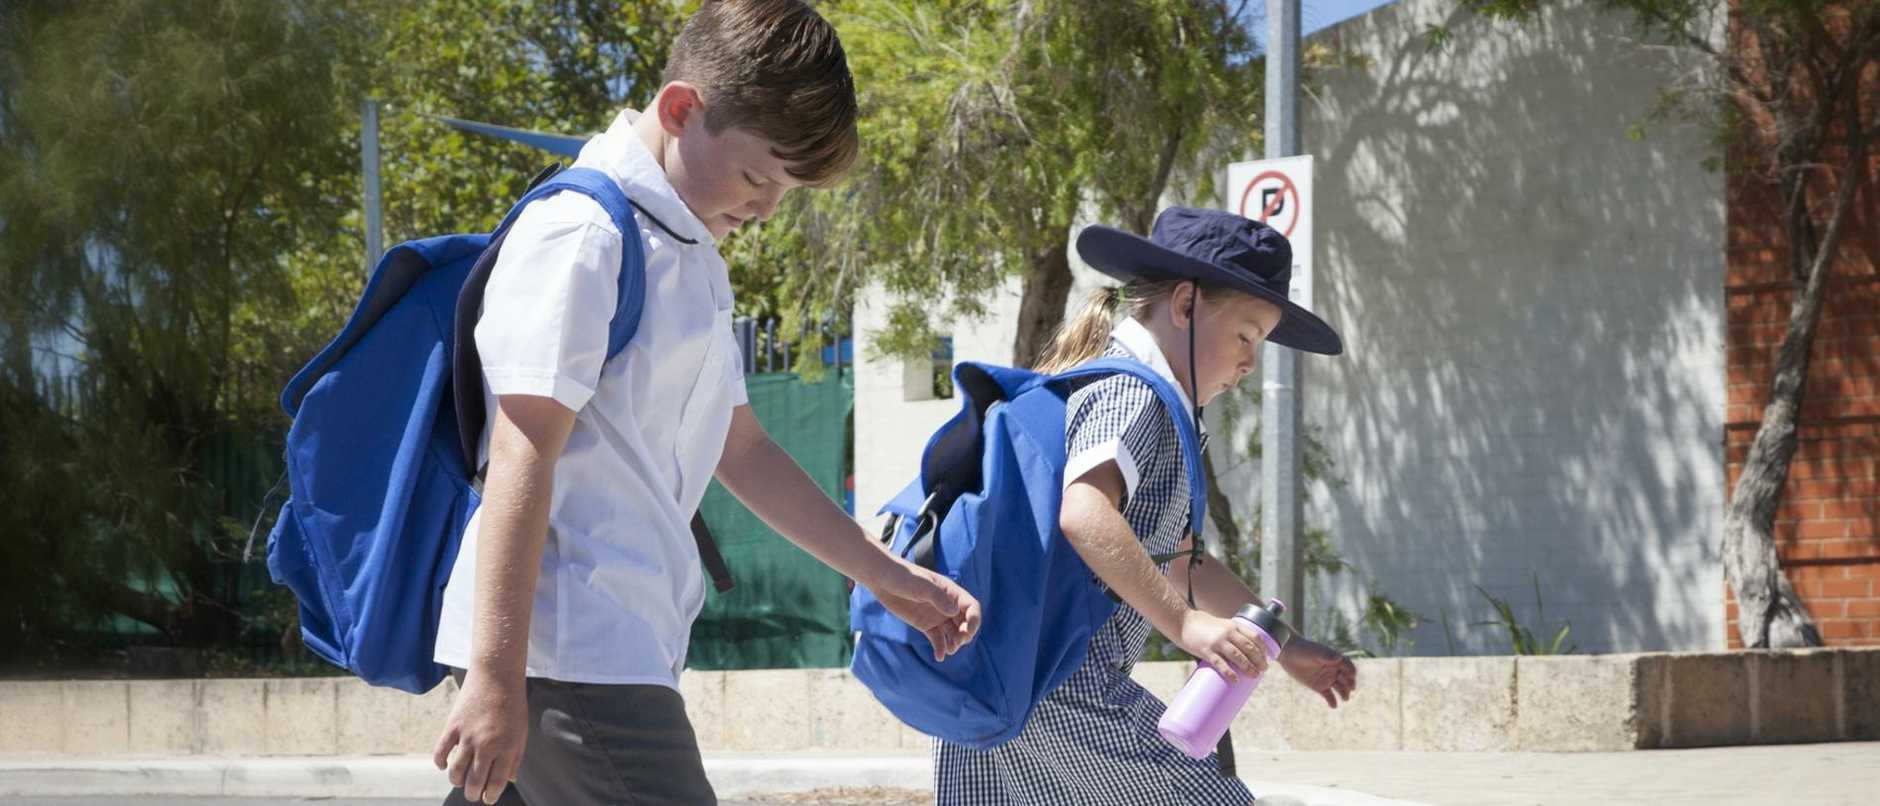 Young kids have made some major changes to their habits as a result of Victoria's gender awareness classes.